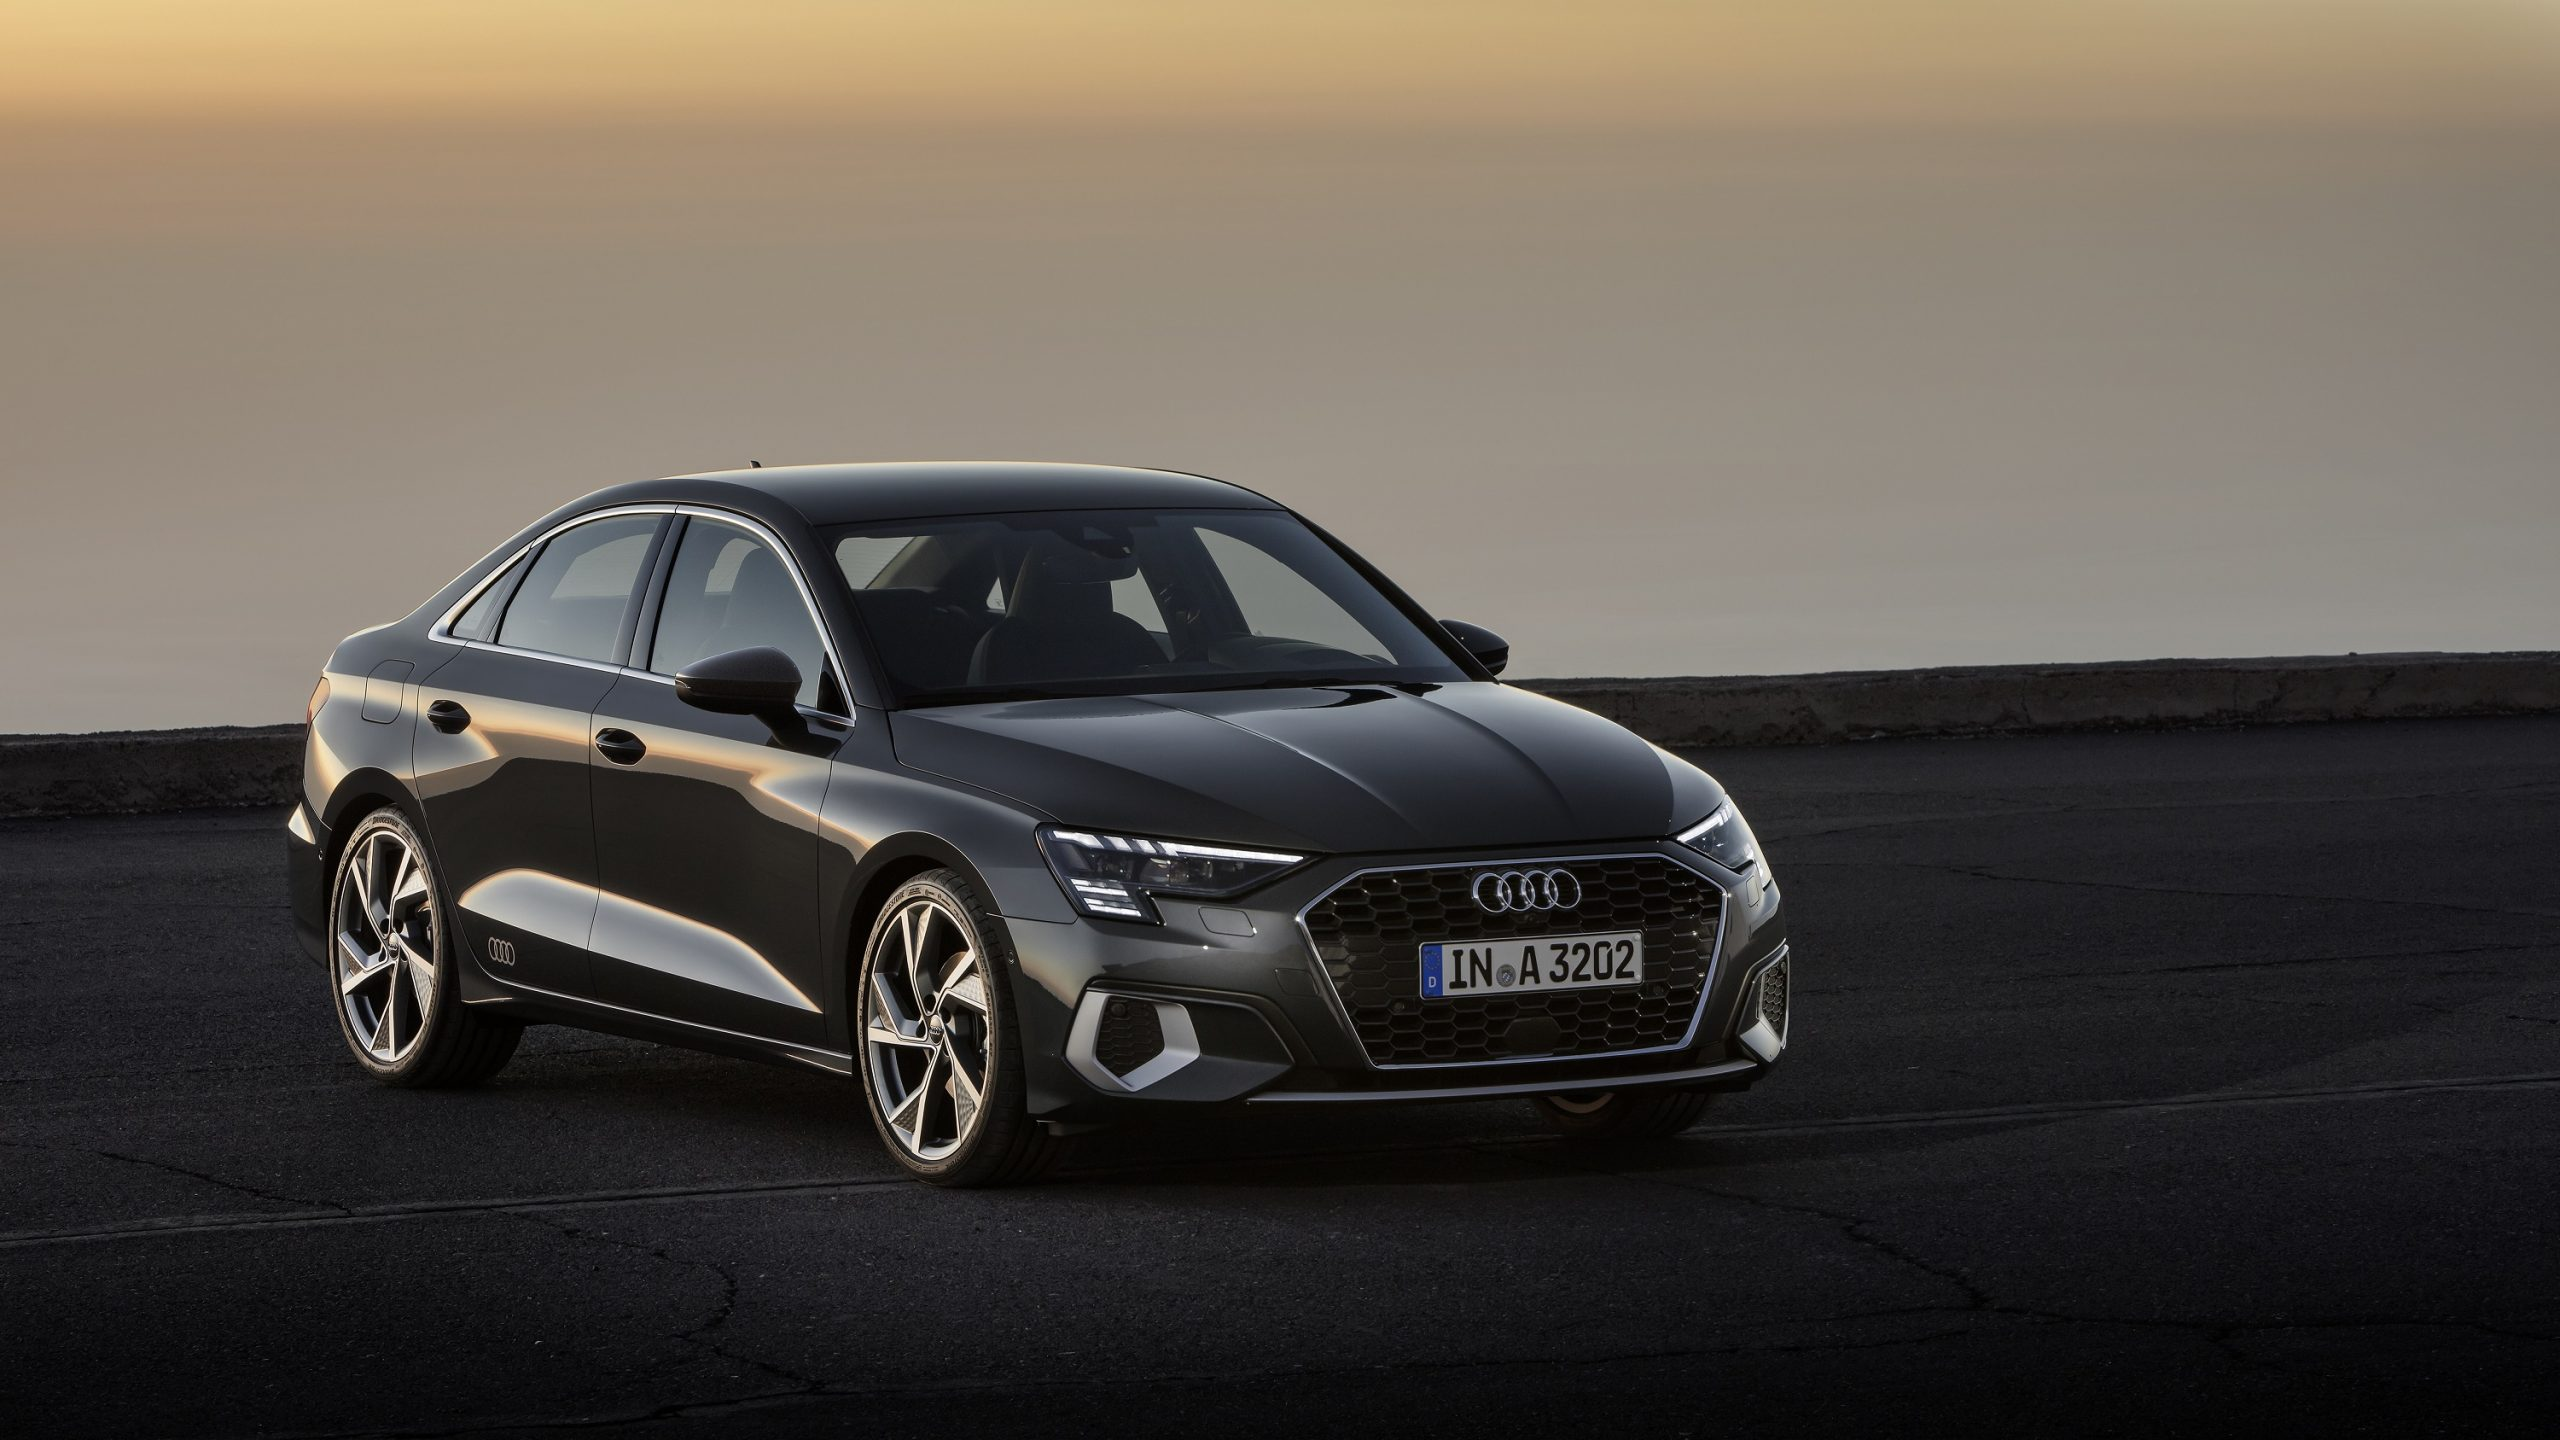 A grey 2022 Audi A3 shot at sunset from the 3/4 angle